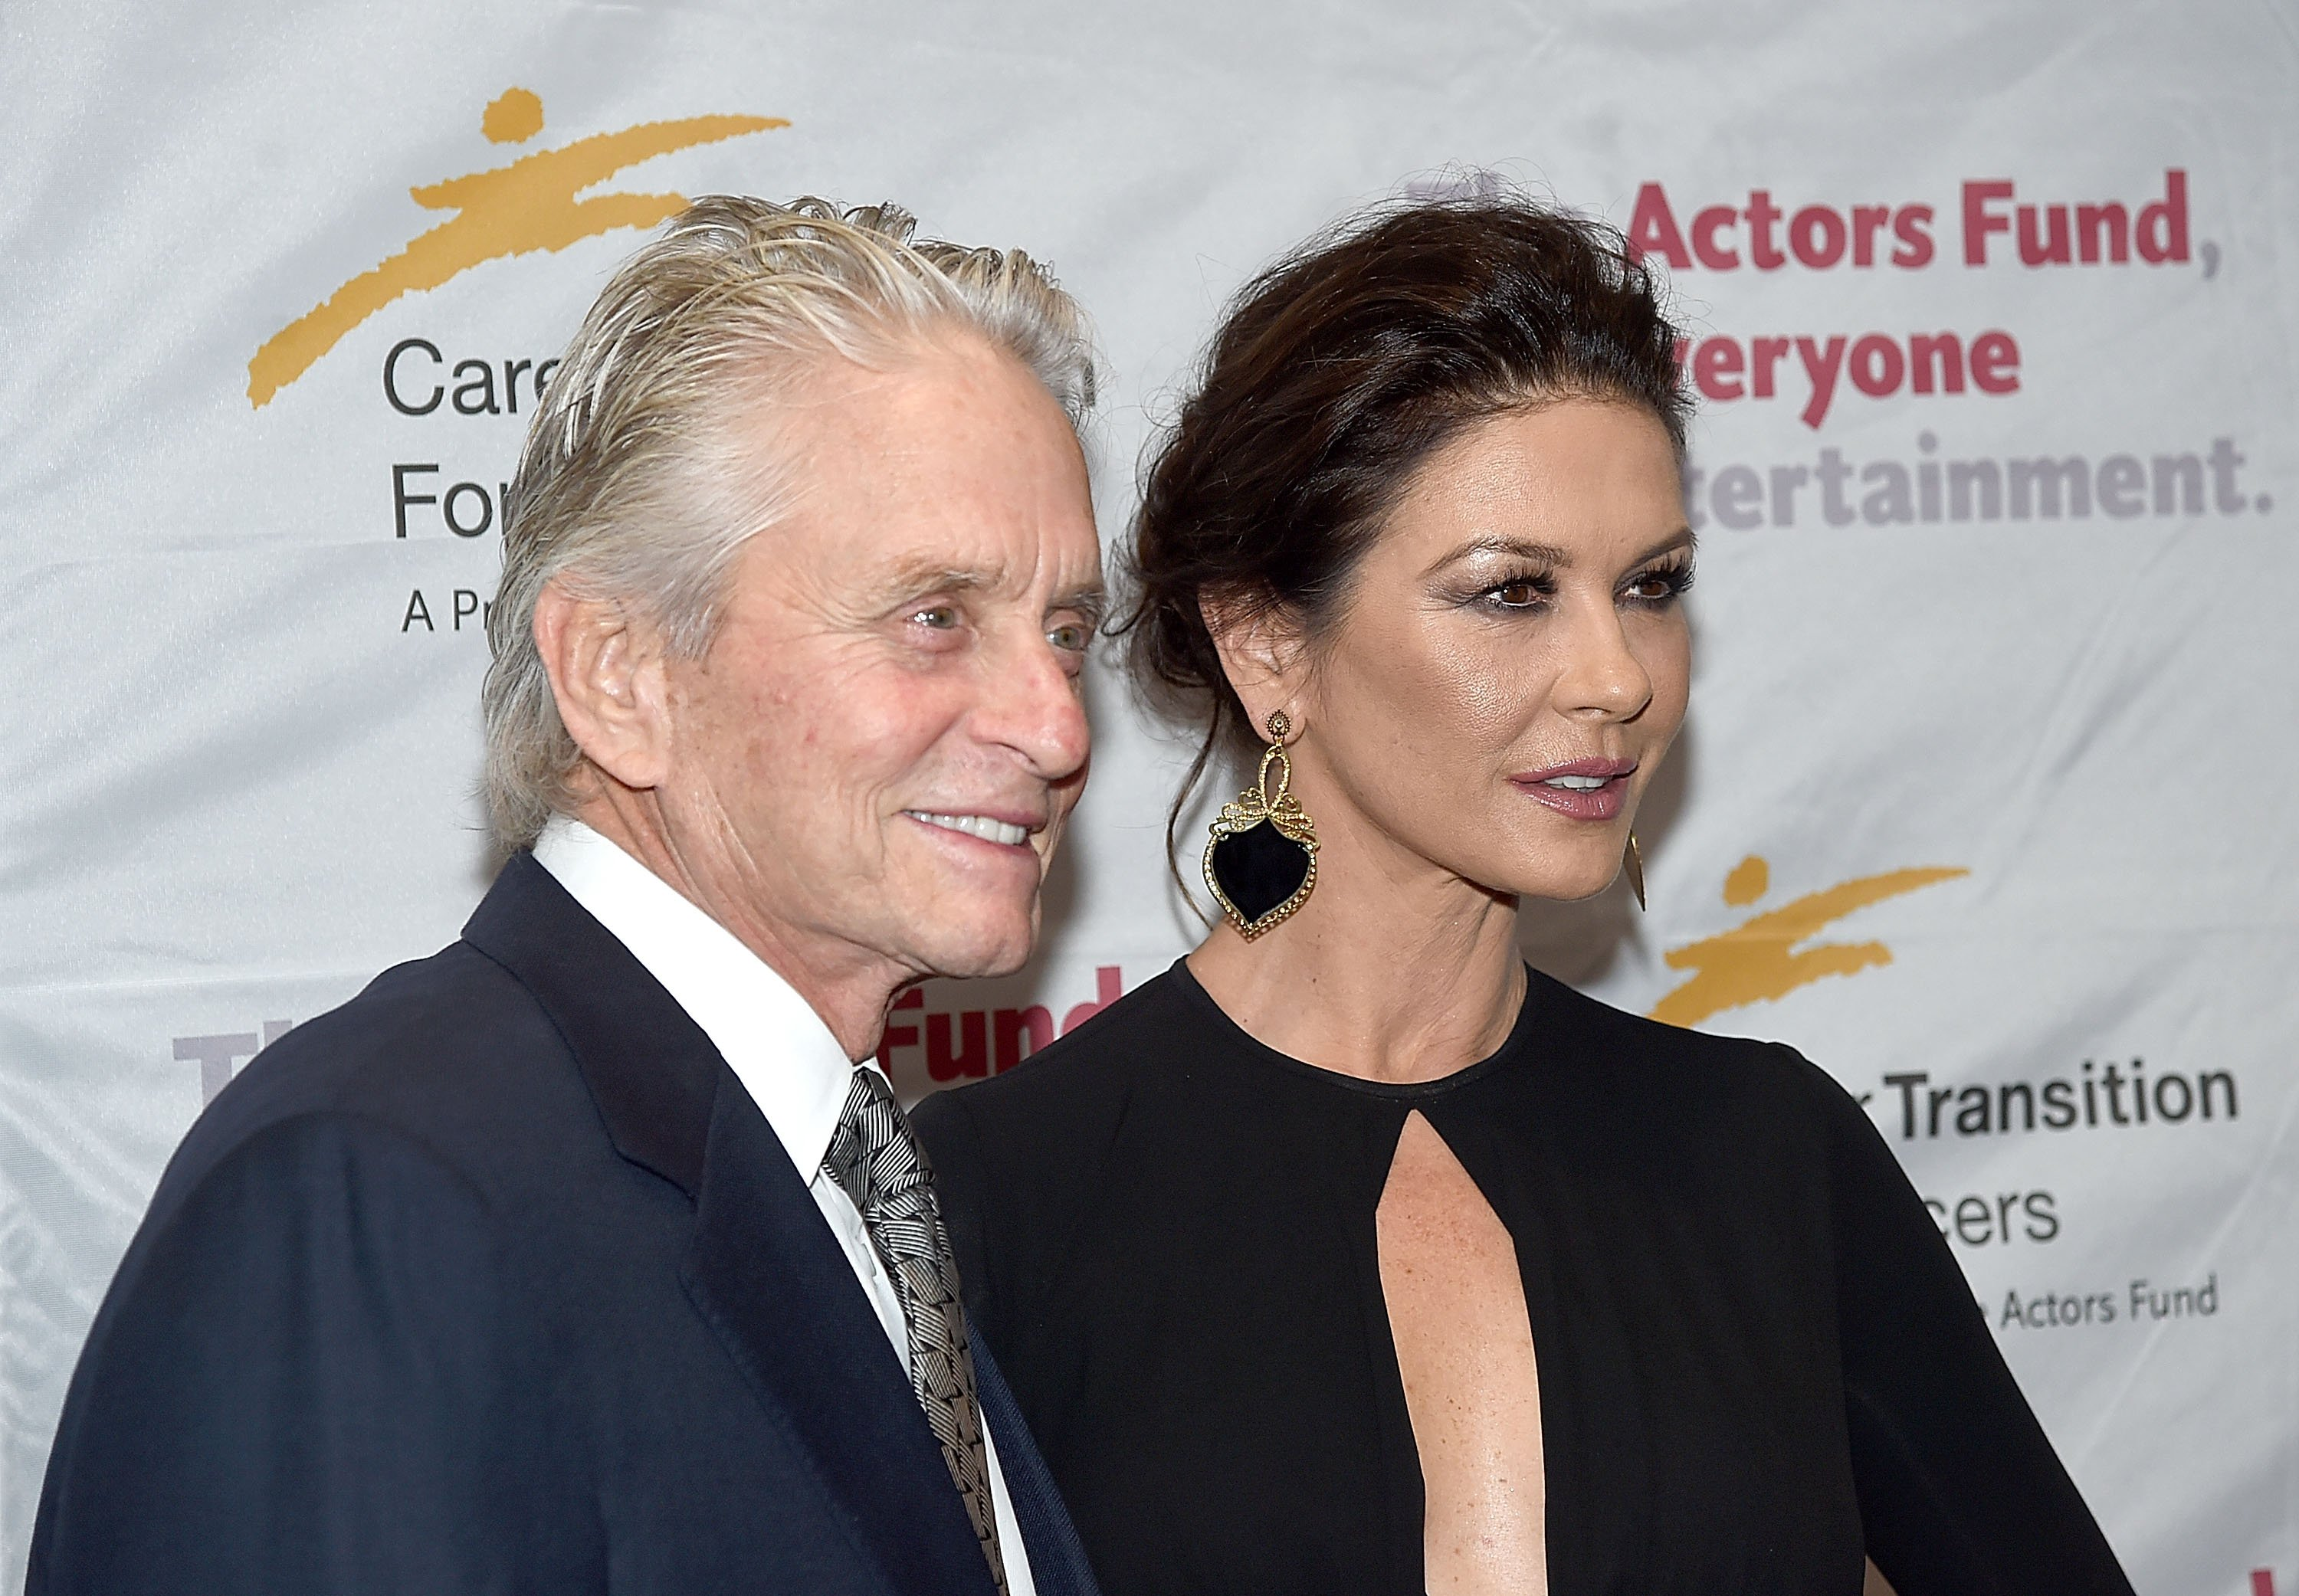 Image Credits: Getty Images / Jamie McCarthy | Michael Douglas and Catherine Zeta-Jones attend The Actor's Fund Career Transition For Dancers 2017 Jubilee Gala at Marriott Marquis Hotel on November 1, 2017 in New York City.